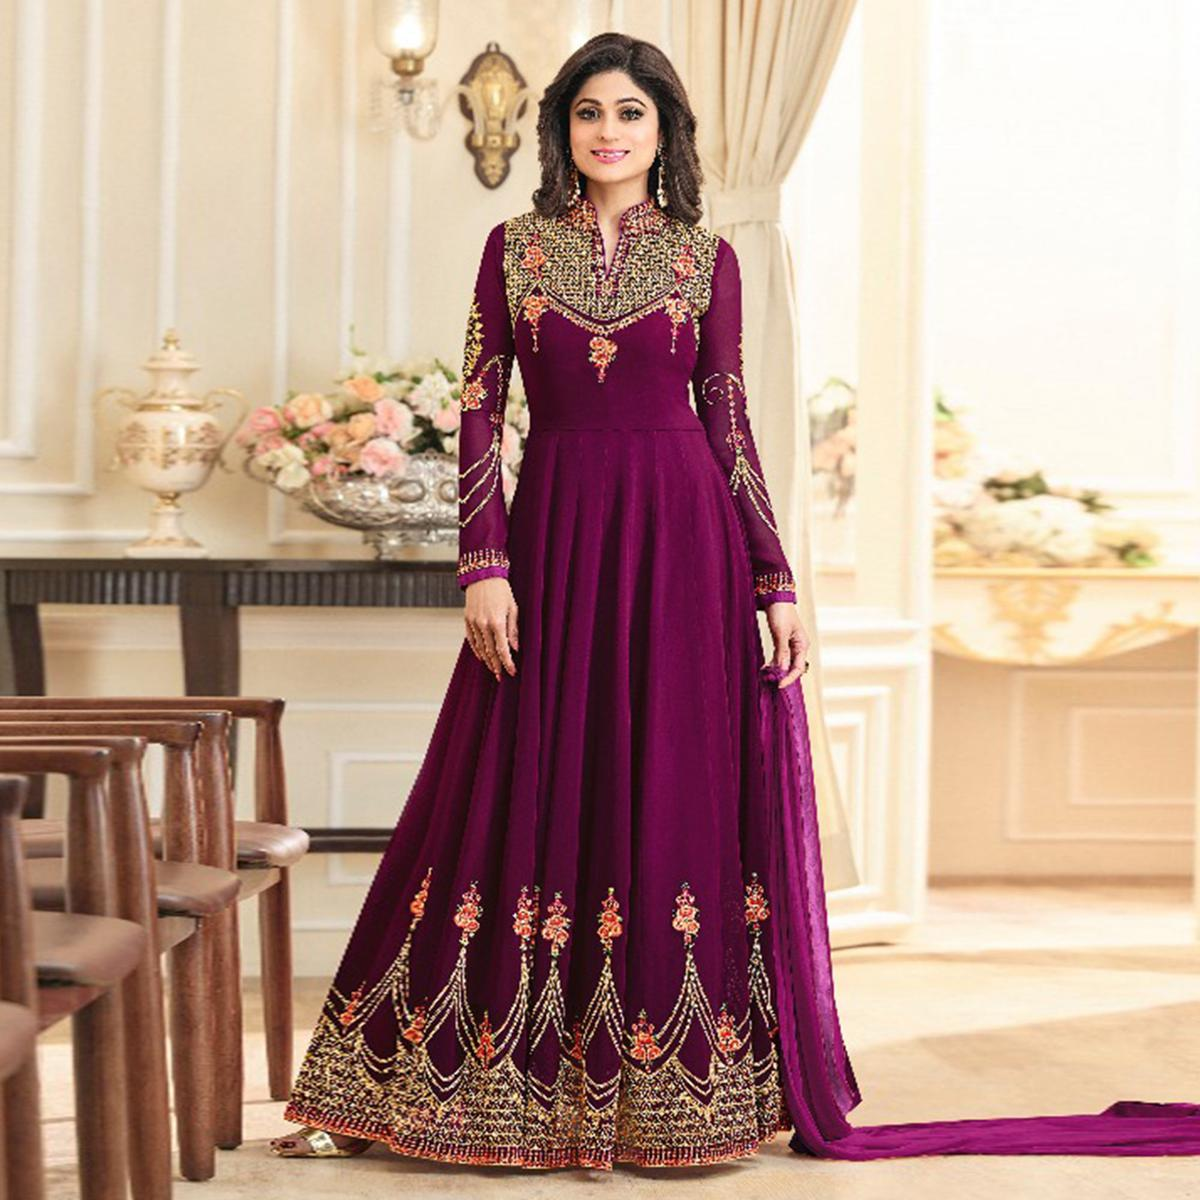 93102be228a68 Buy Capricious Purple Colored Party Wear Embroidered Georgette Anarkali  Suit For womens online India